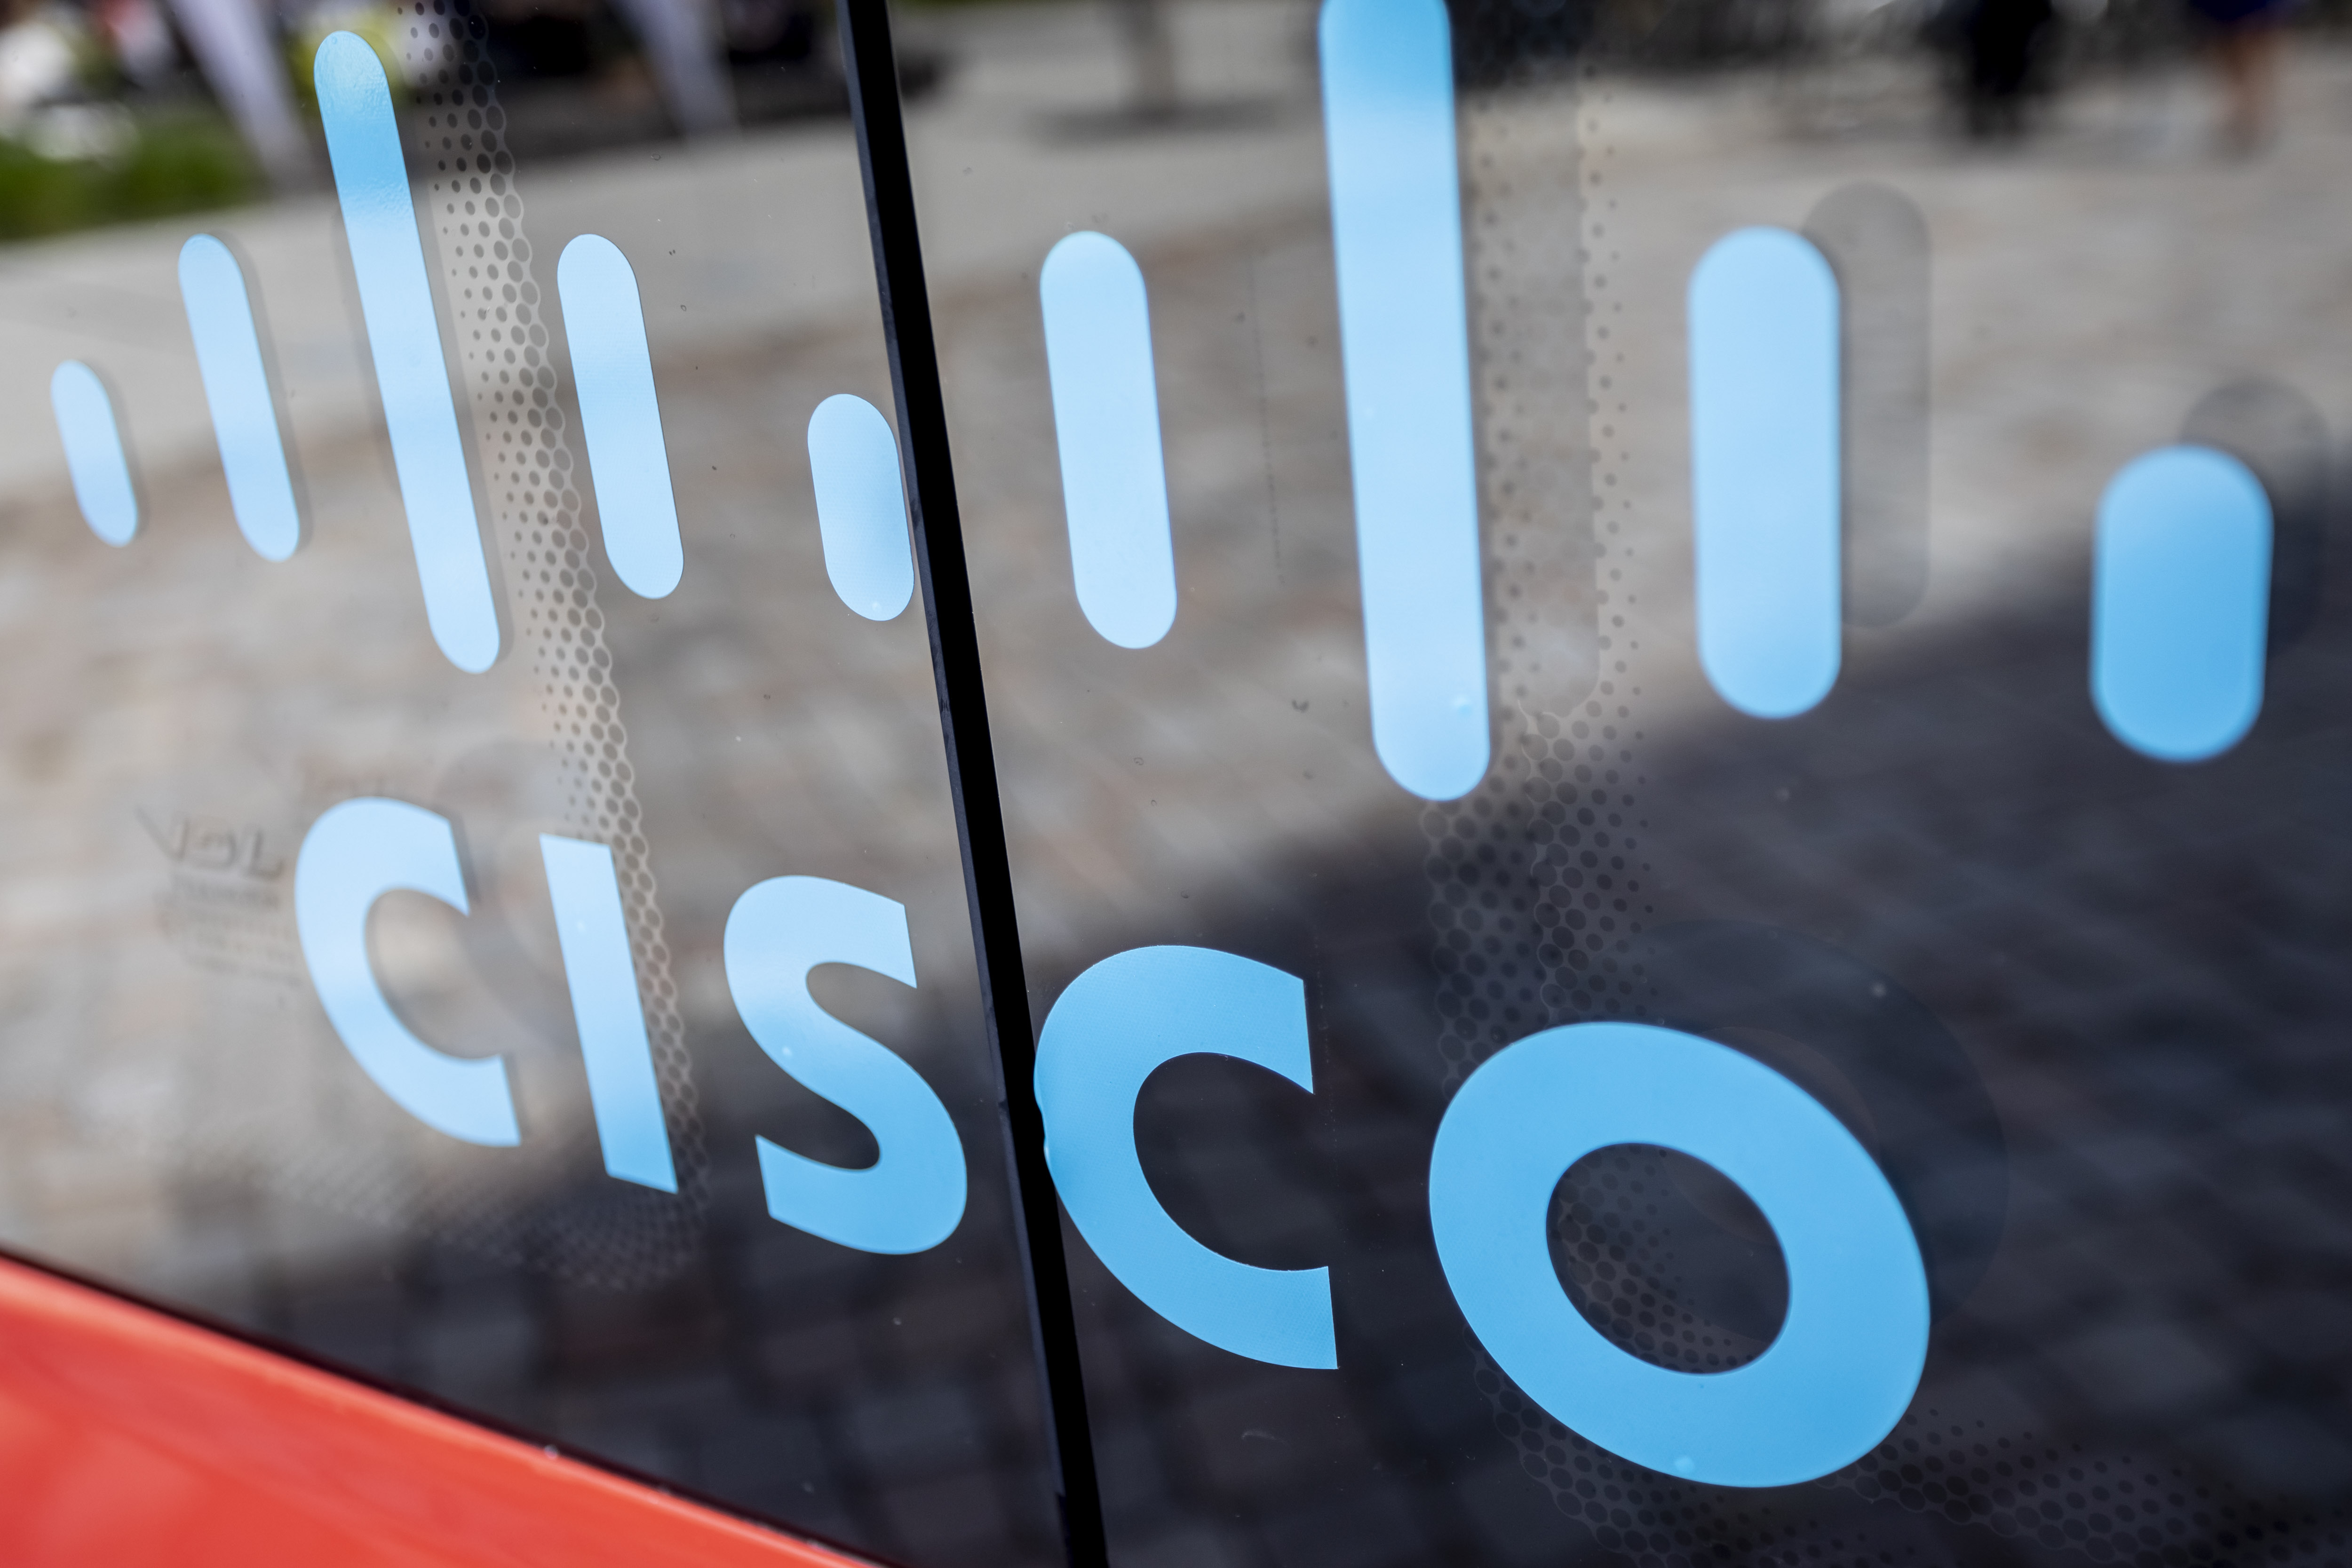 Cisco to acquire ThousandEyes